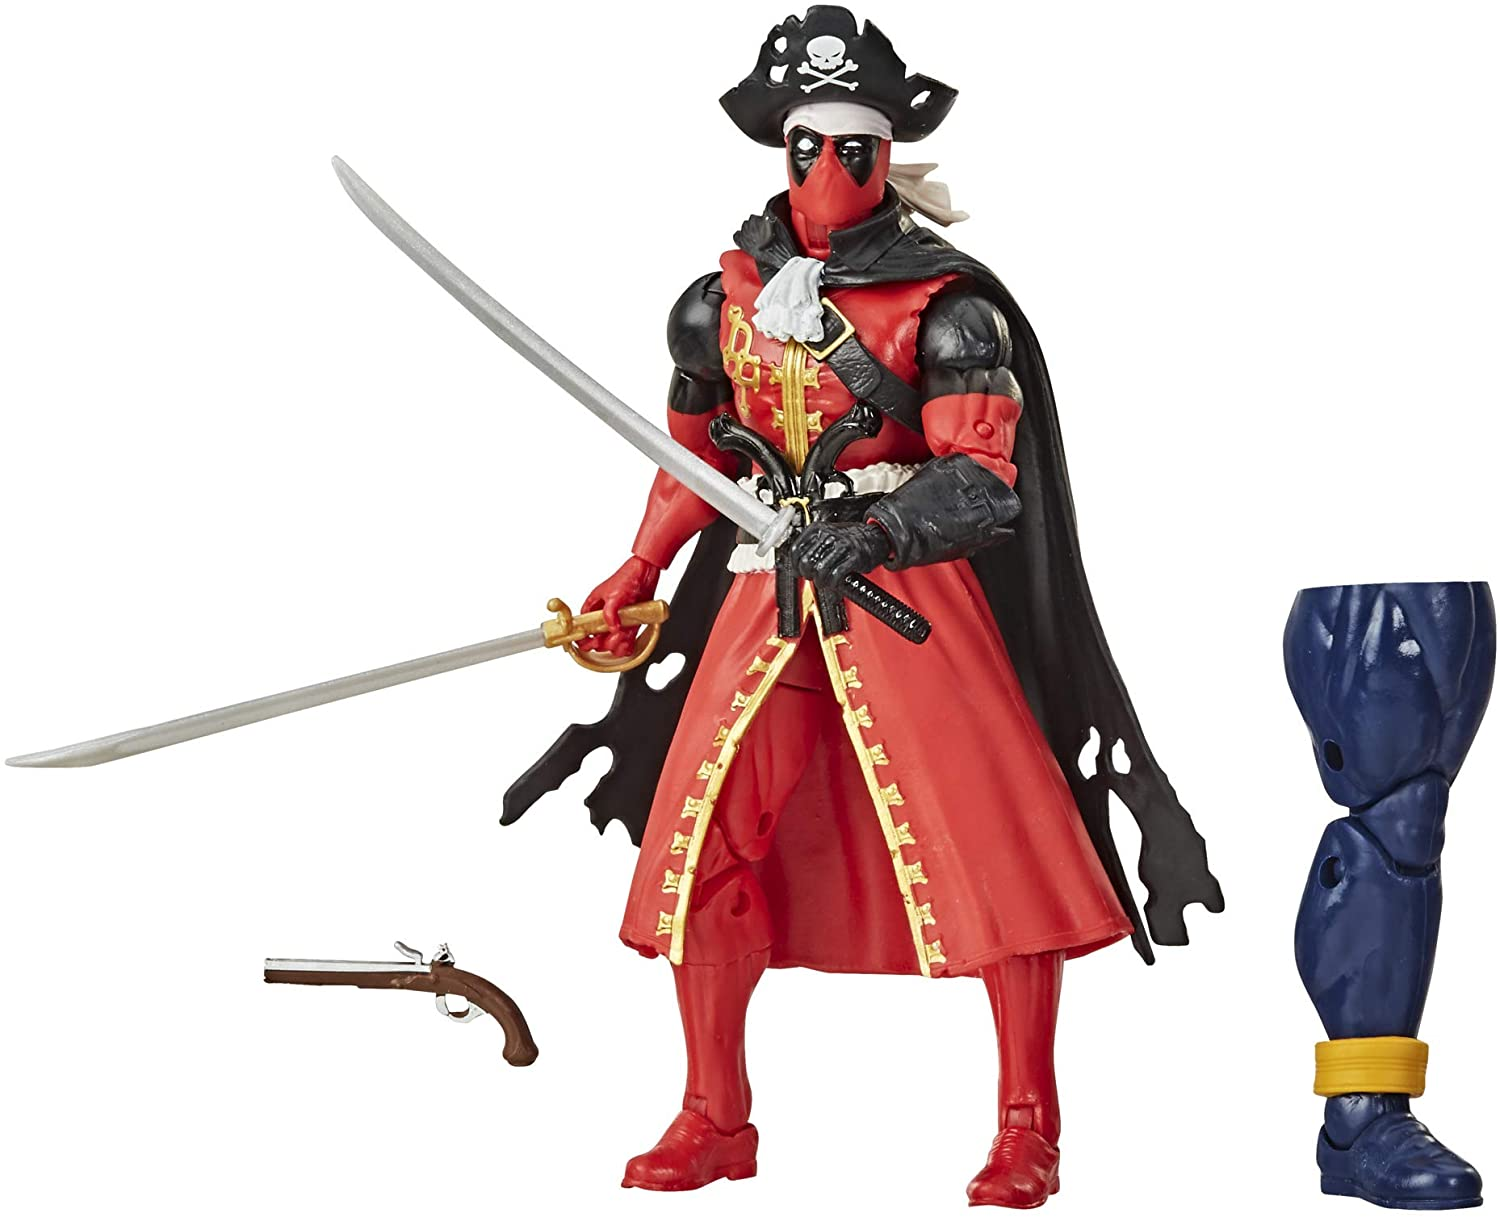 Hasbro Marvel Legends Series 6-inch Deadpool Collection Deadpool Action Figure (Pirate) Toy Premium Design and 3 Accessories